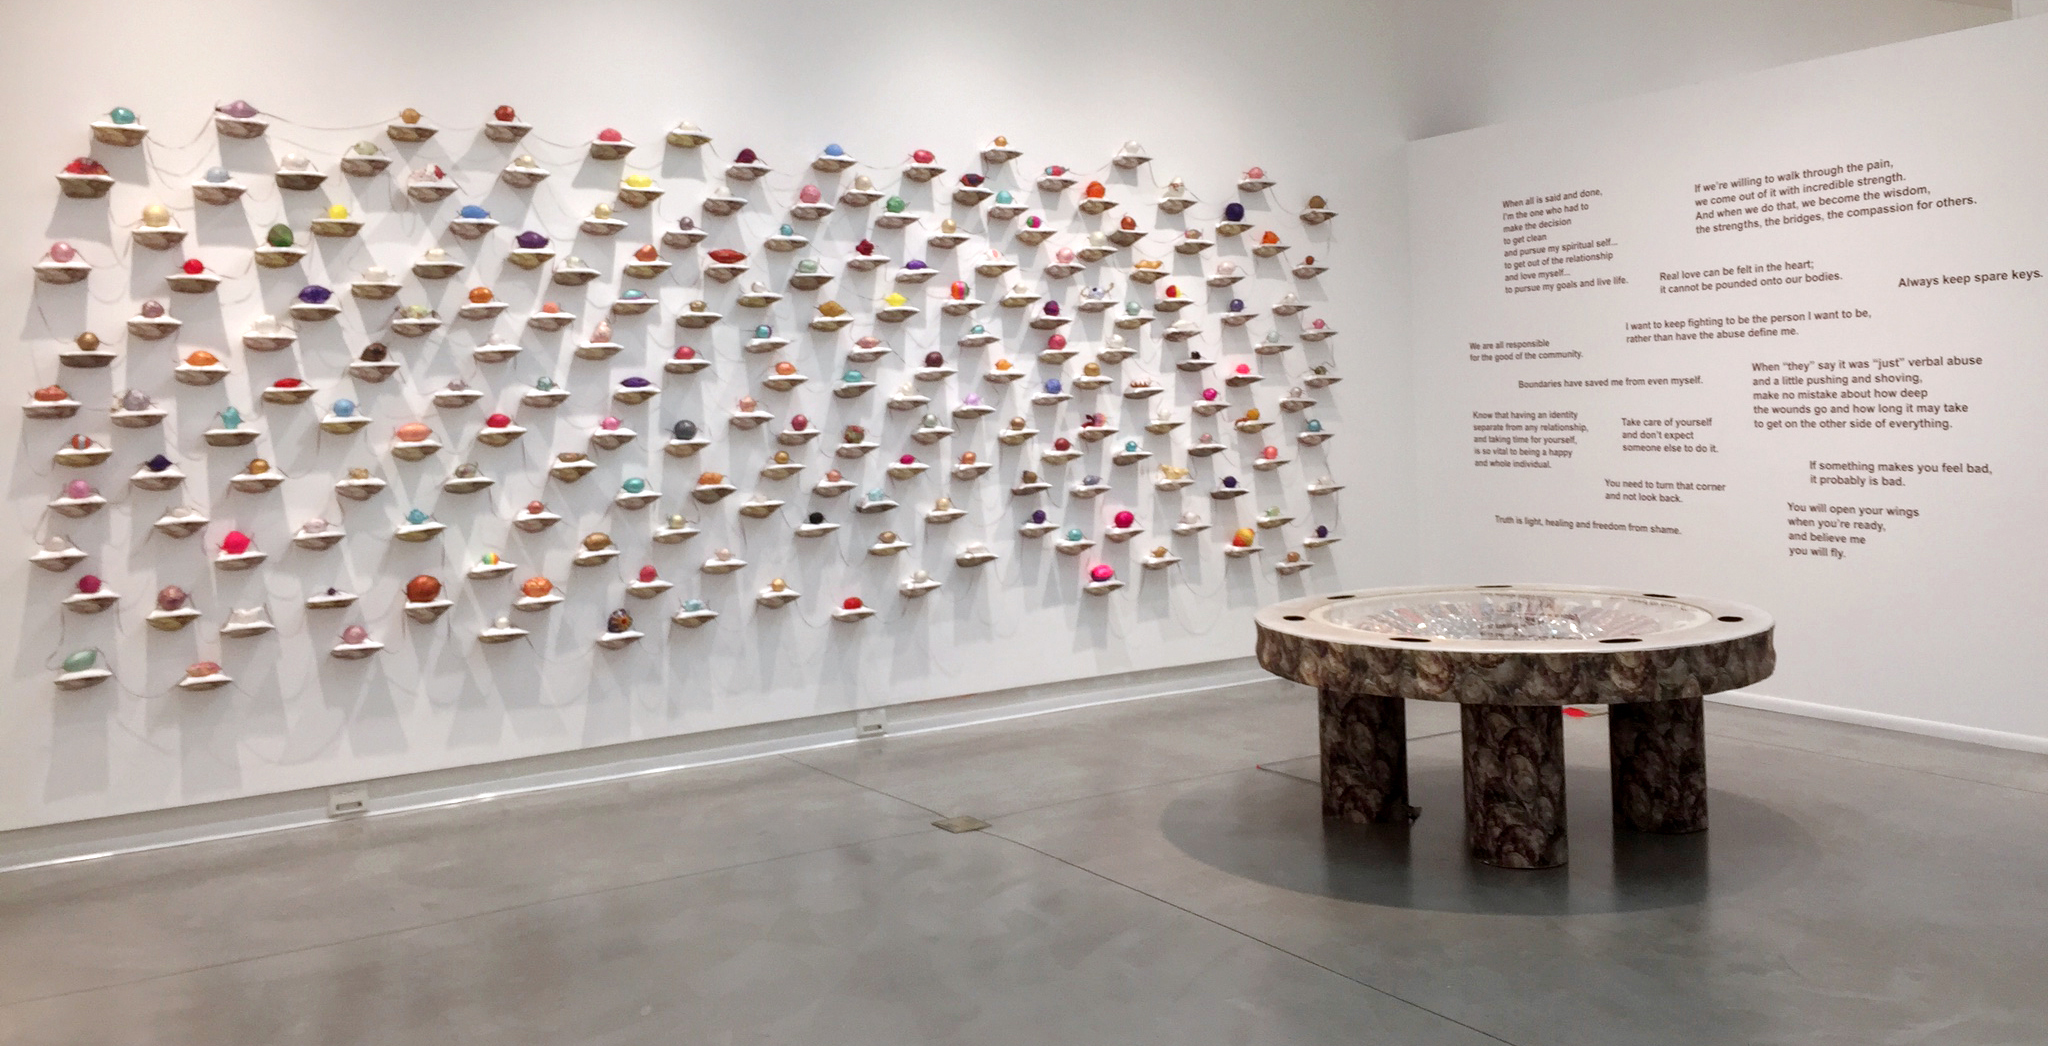 Pearls of Wisdom installed  at Orange Coast College gallery in 2017 for the exhibit, Kim Abeles: ˌterə ˈfɜːrmə